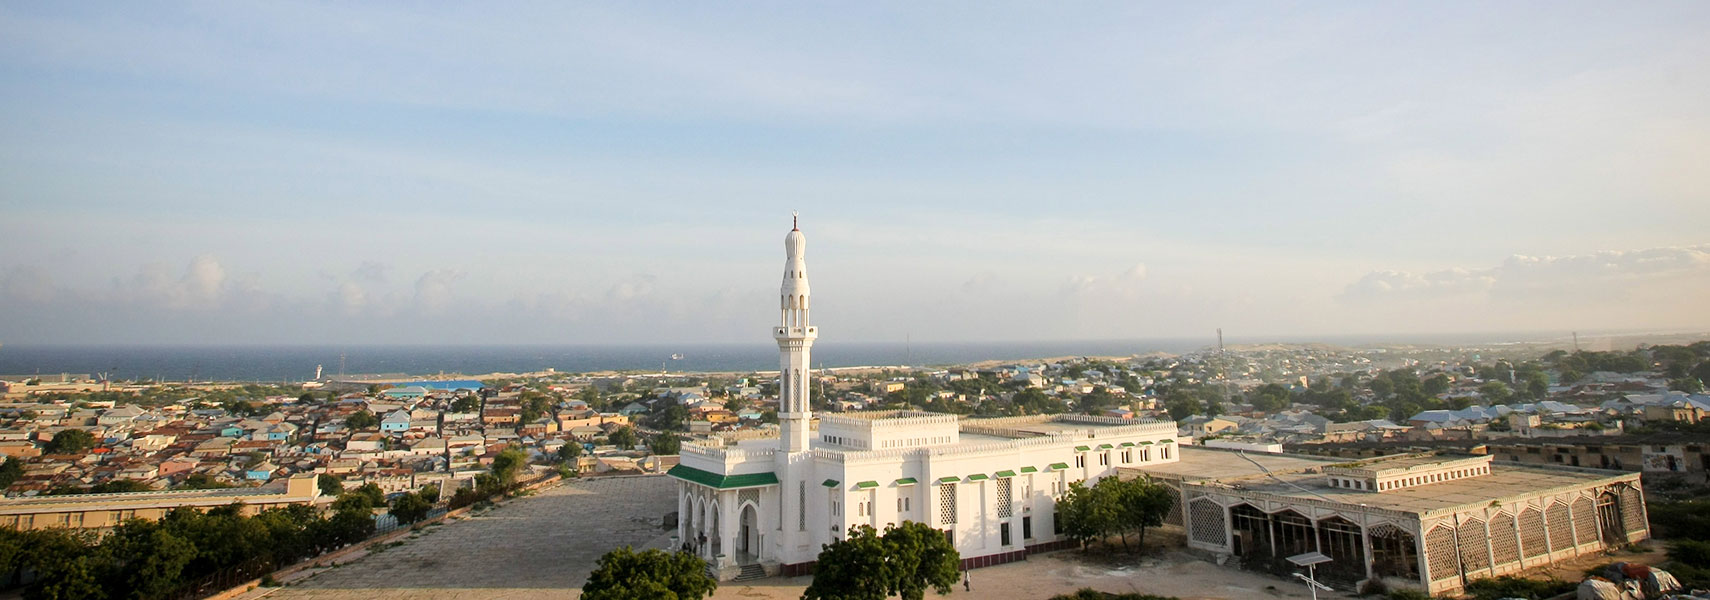 Mosque opposite the parliament building in Mogadishu